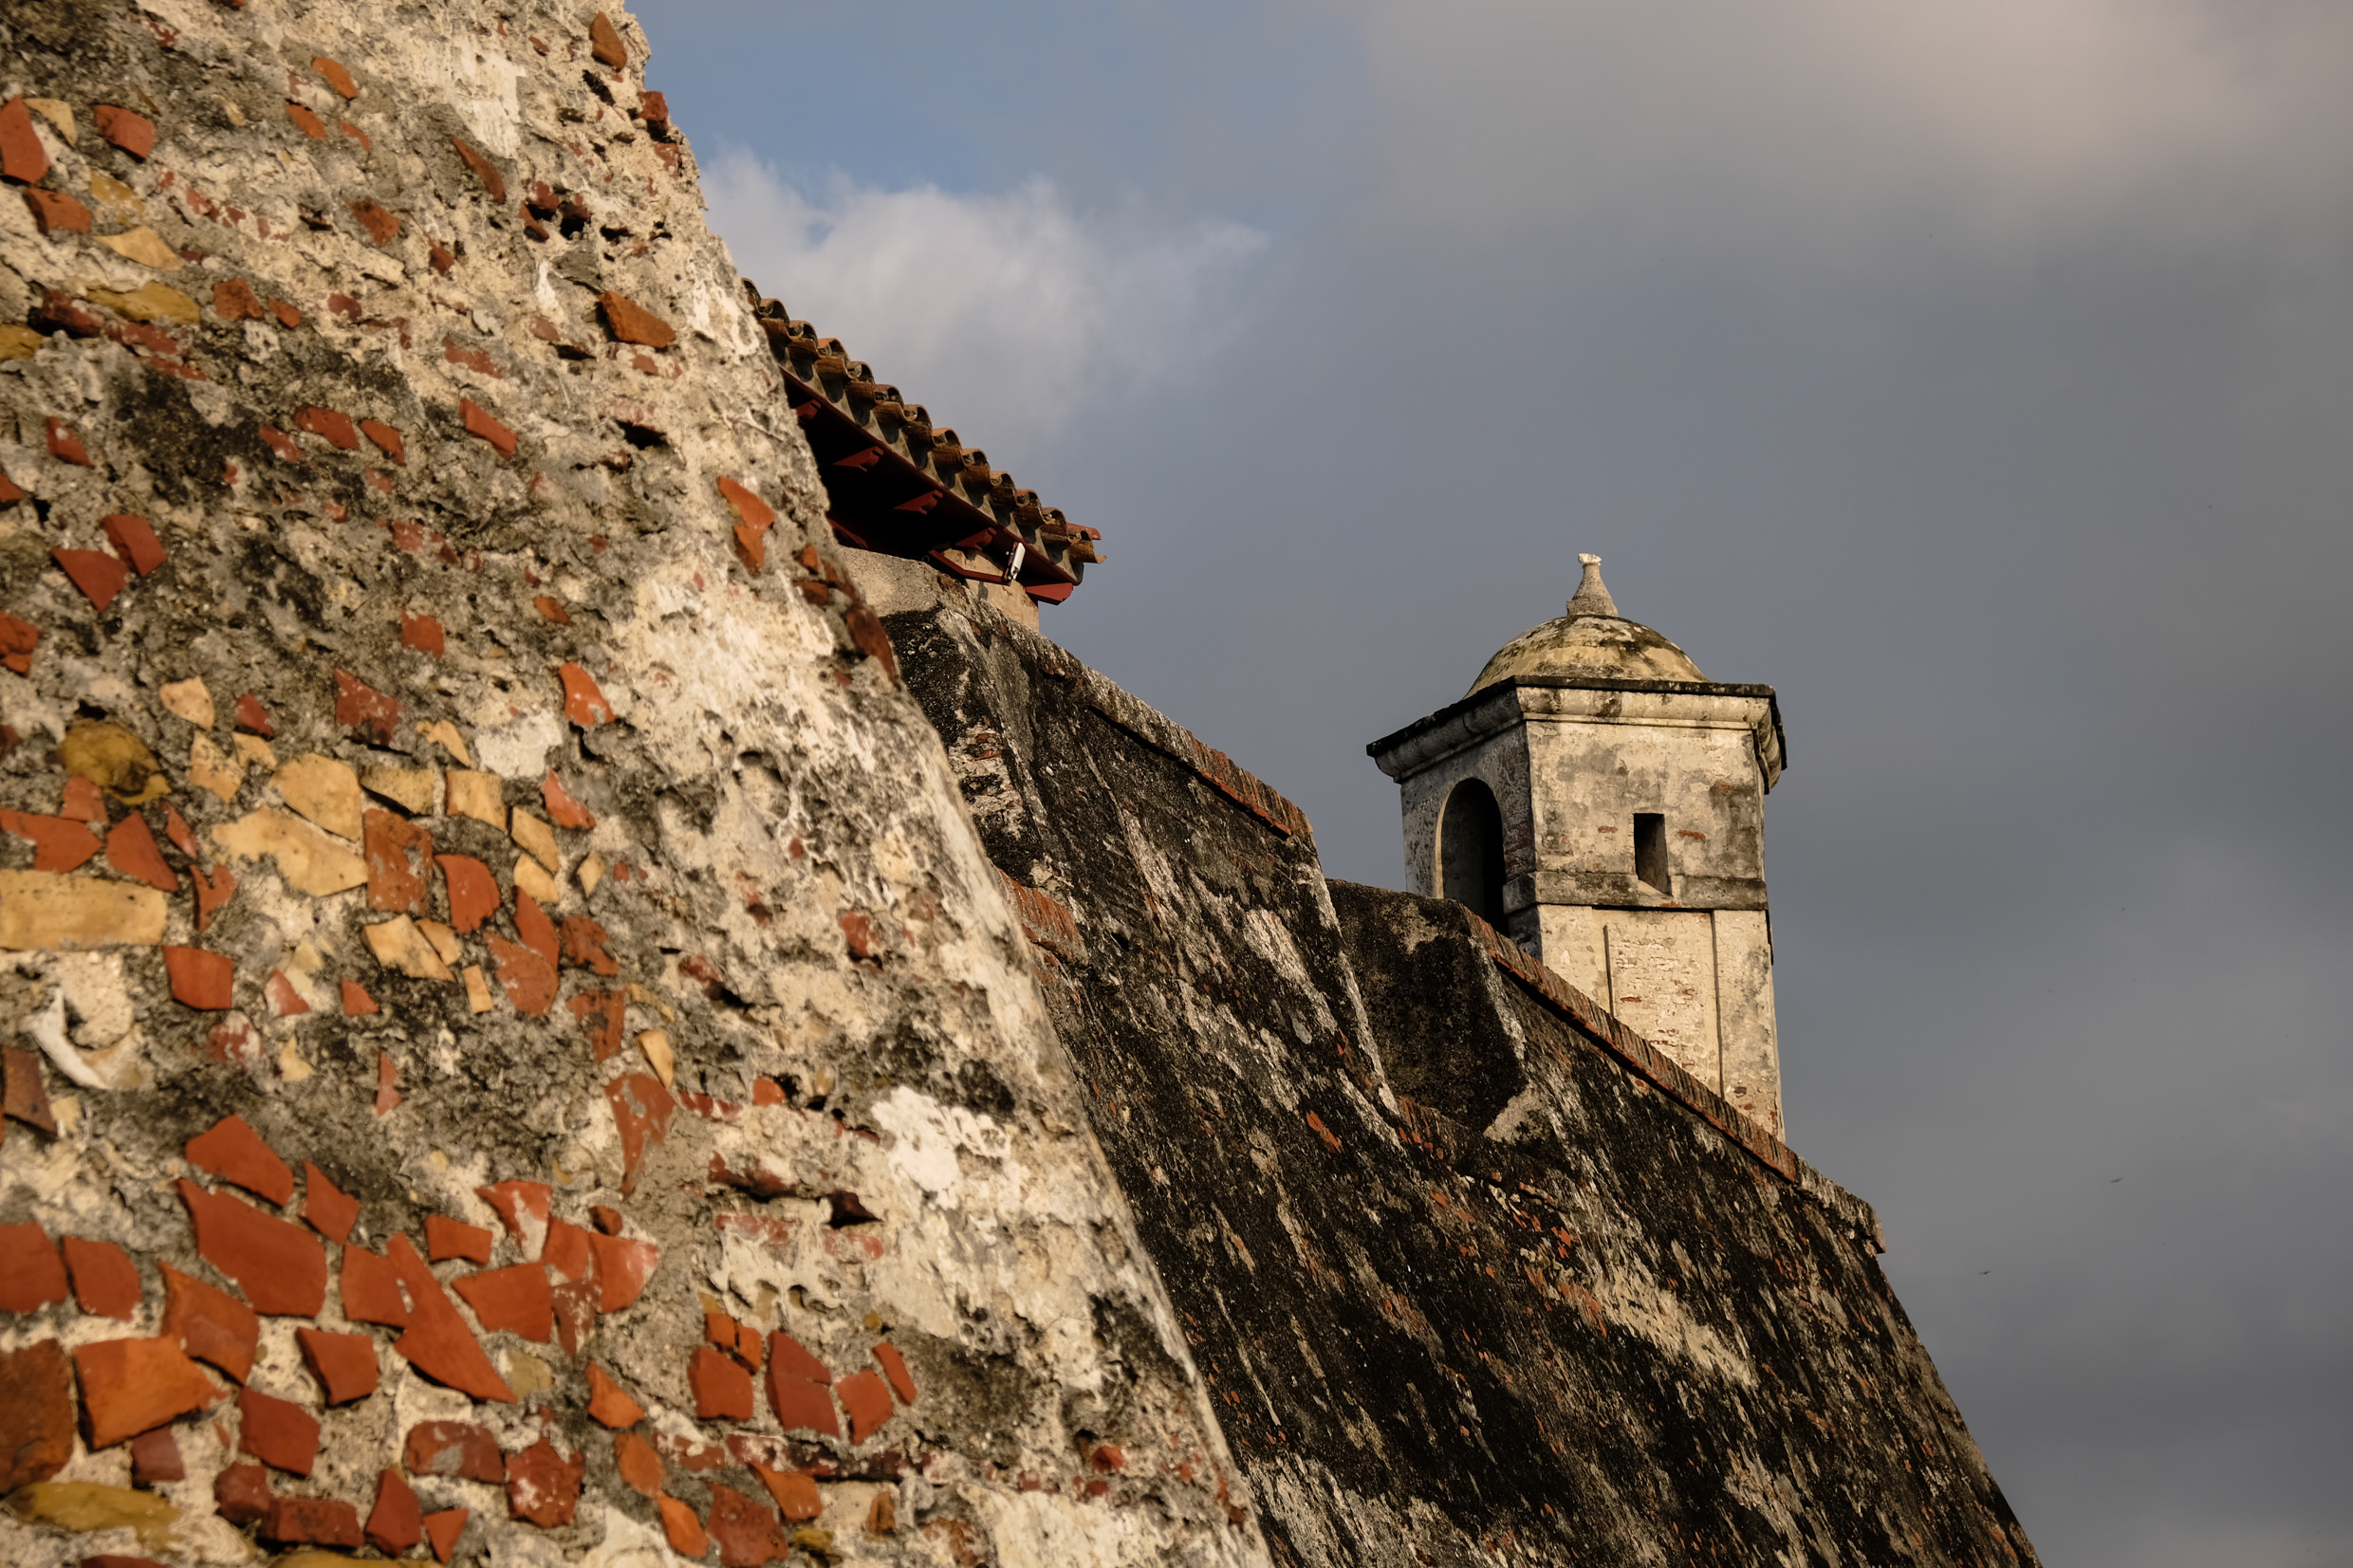 Colombia-TONED-181016-254.jpg